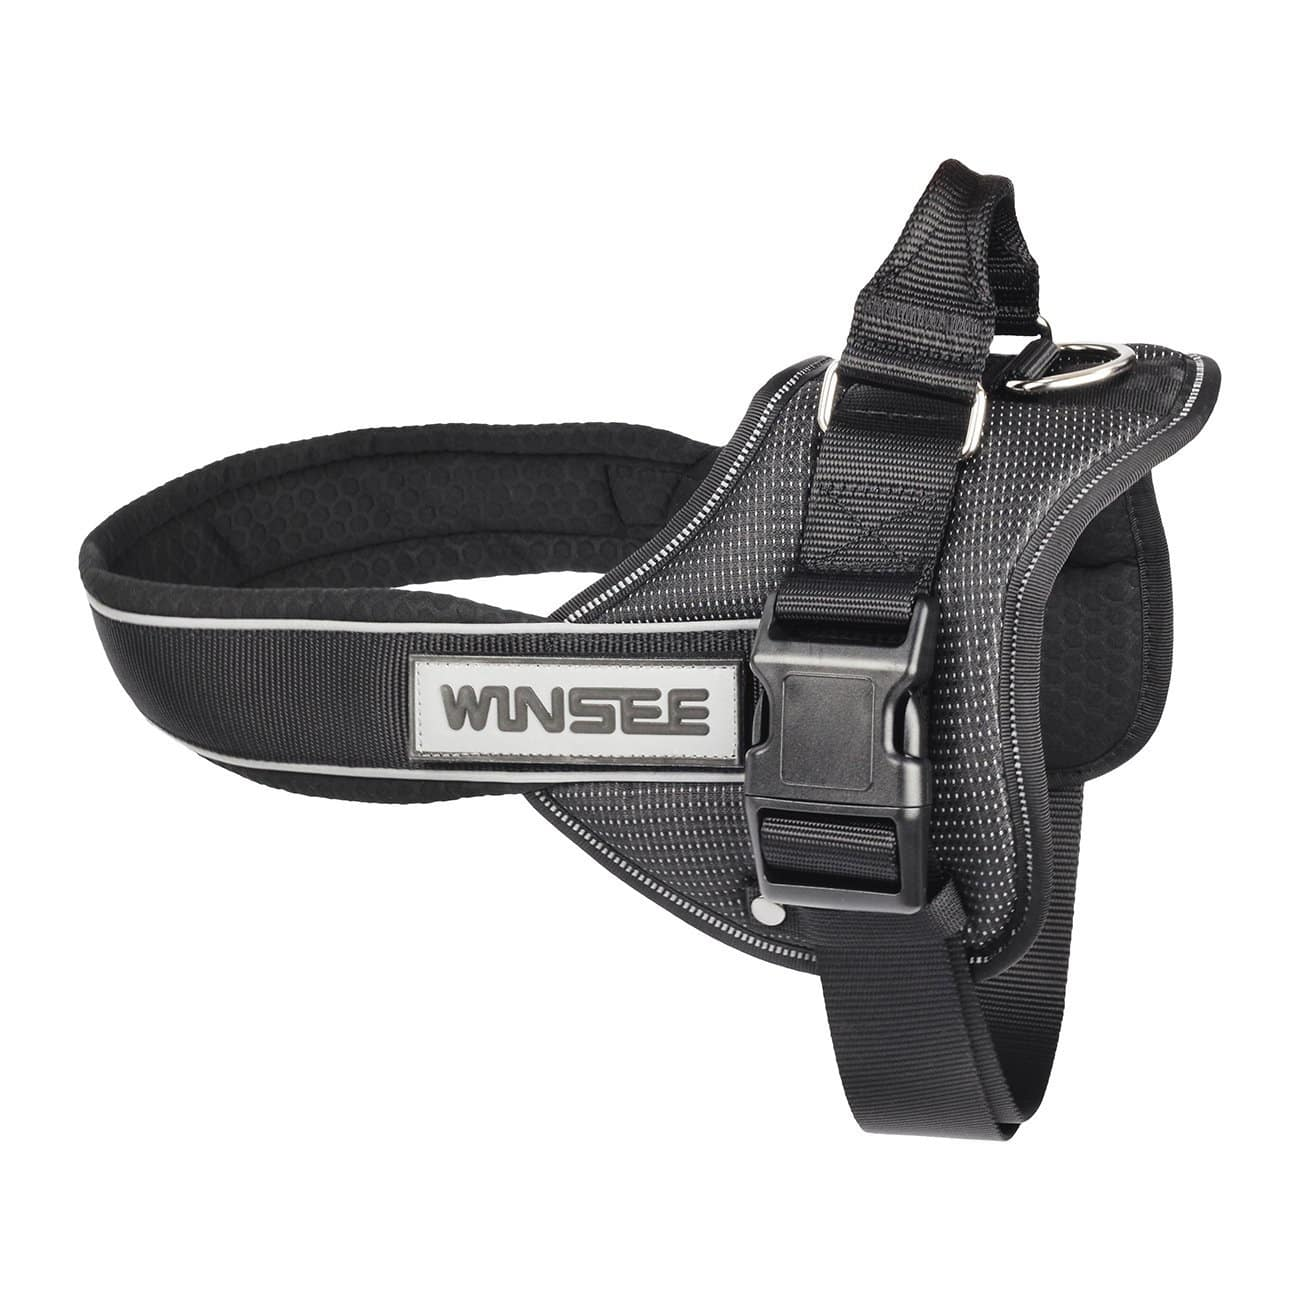 No Pull Dog Vest Harness Soft Reflective Harness with Handle Size L (Black) $9.99 @Amazon AC+FS